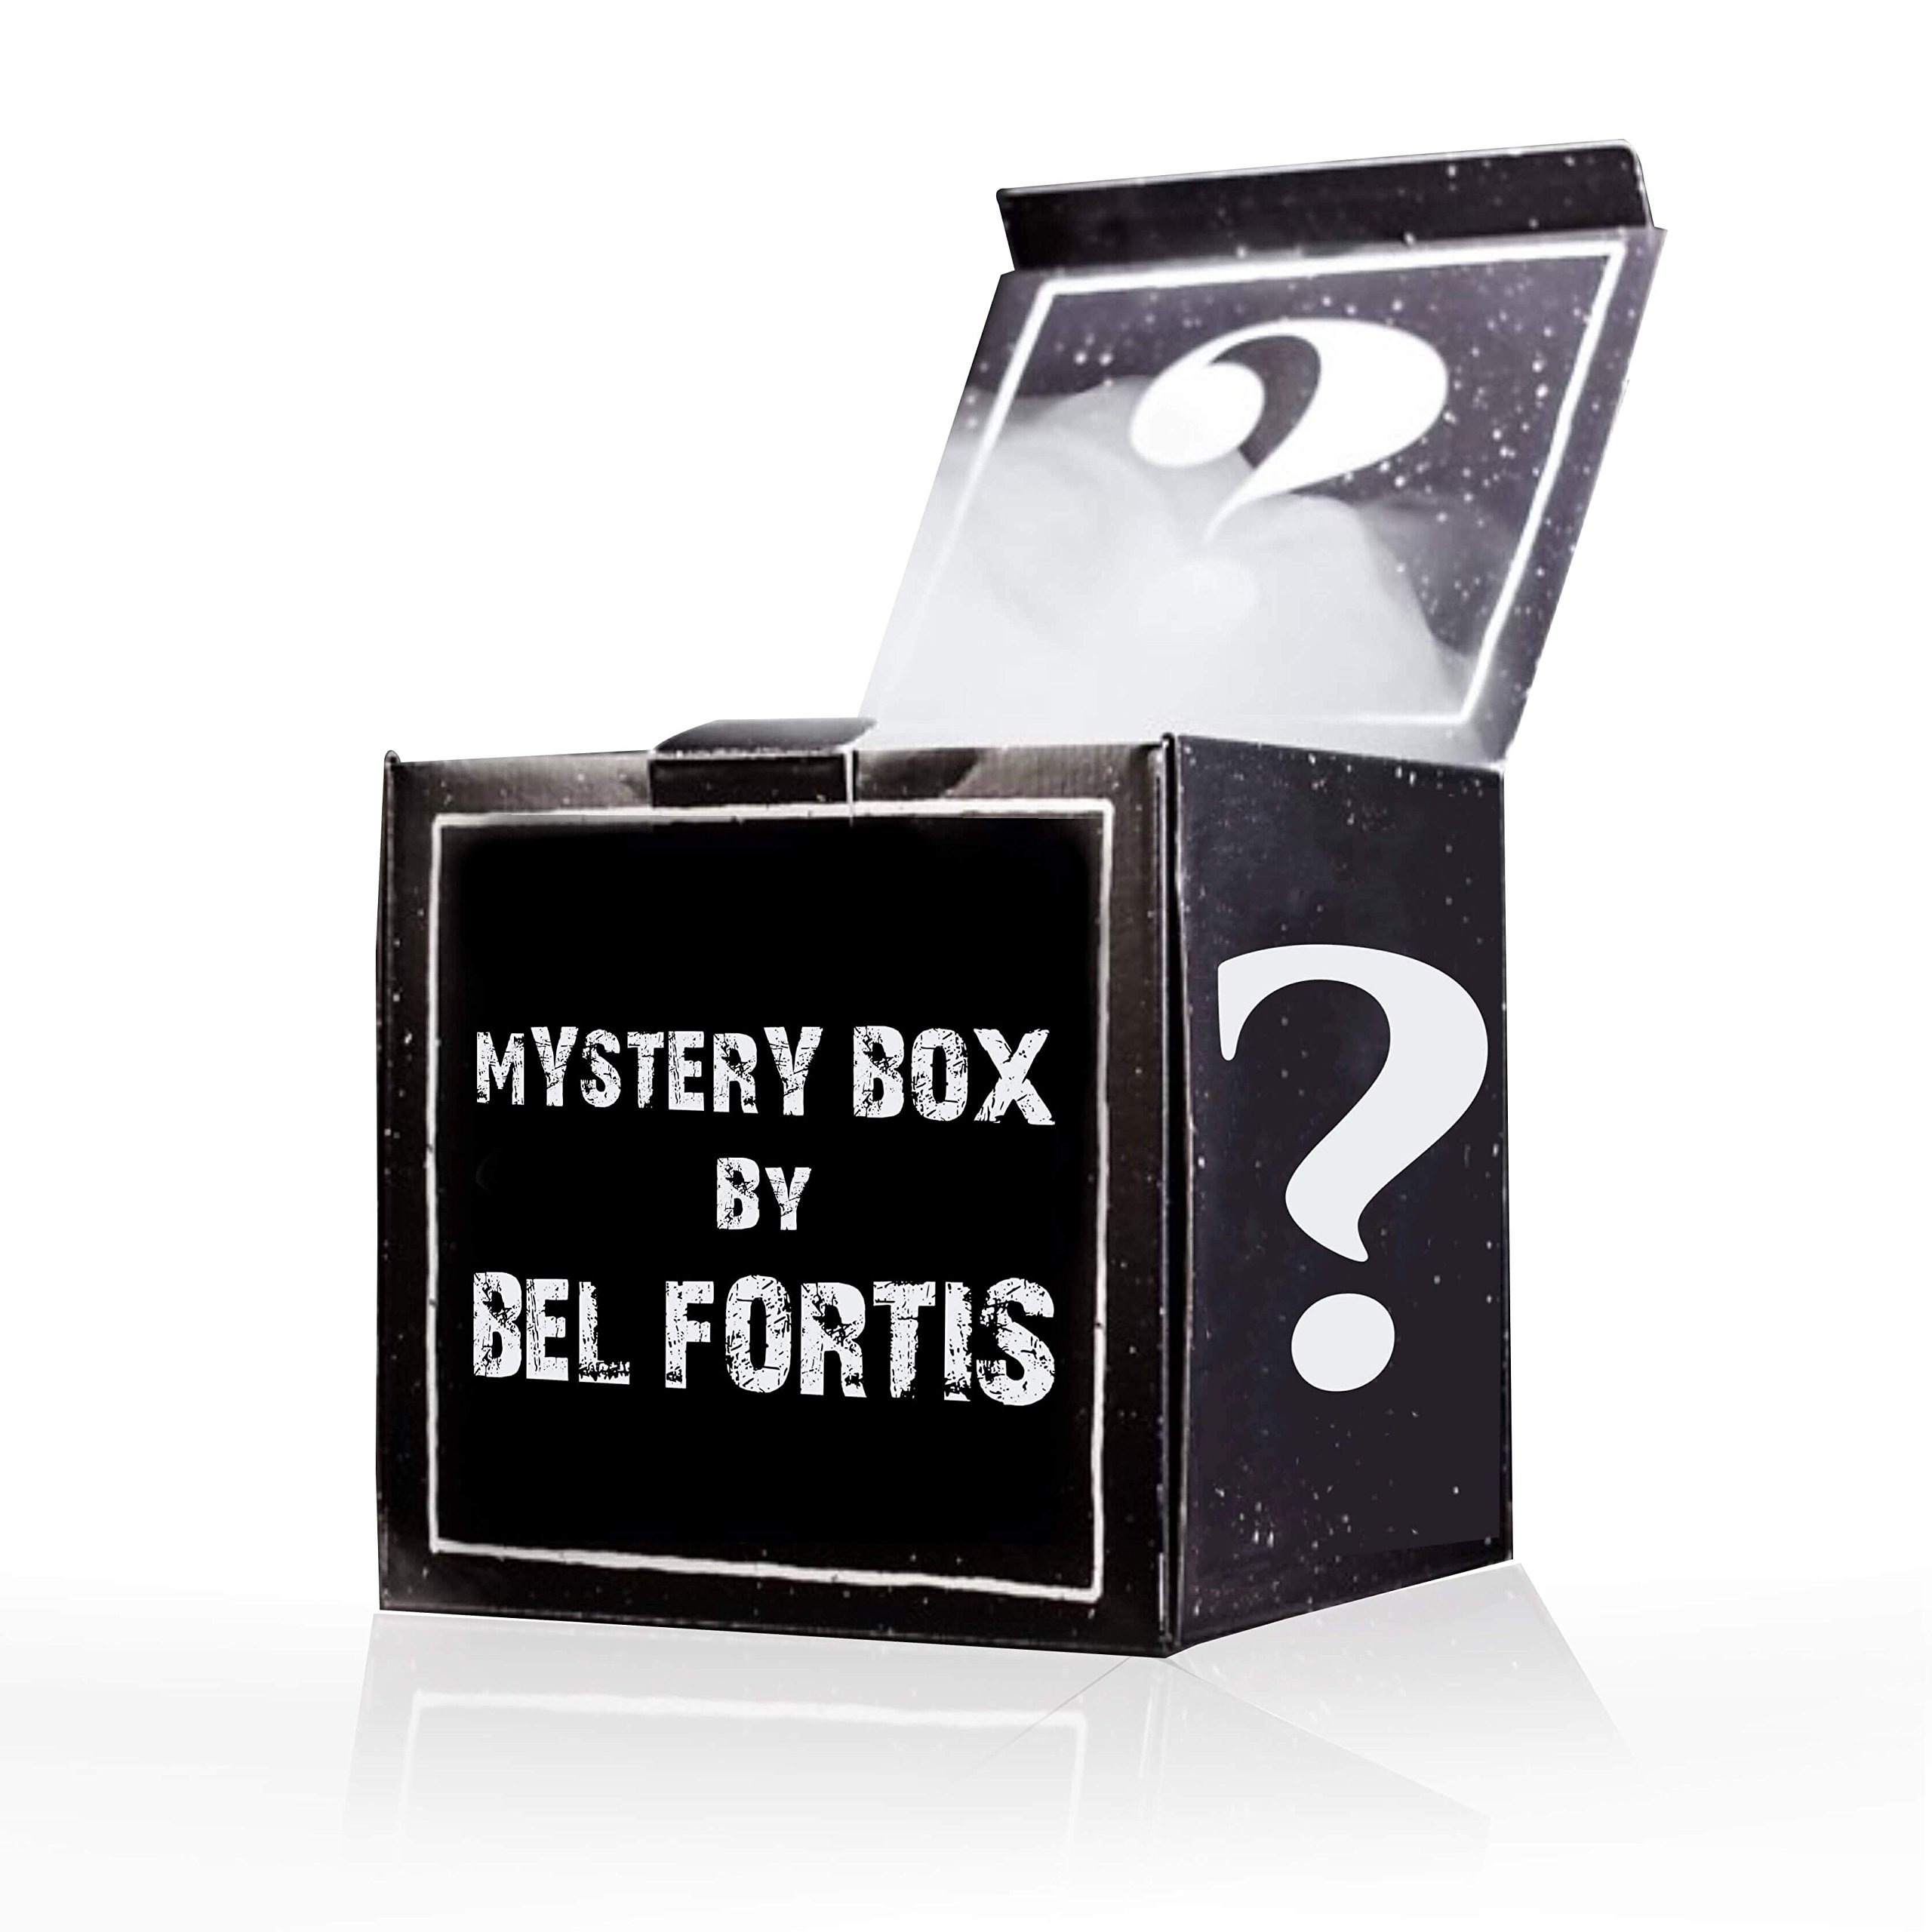 Fortis Mystery Box Surprise Treasure - All New Items – Fun Gadgets, Foster Grant Accessories, Moroccan Oil & Other Beauty Items, Rare & Vintage pre 2000s Items, Sporting Goods & Other Treasures